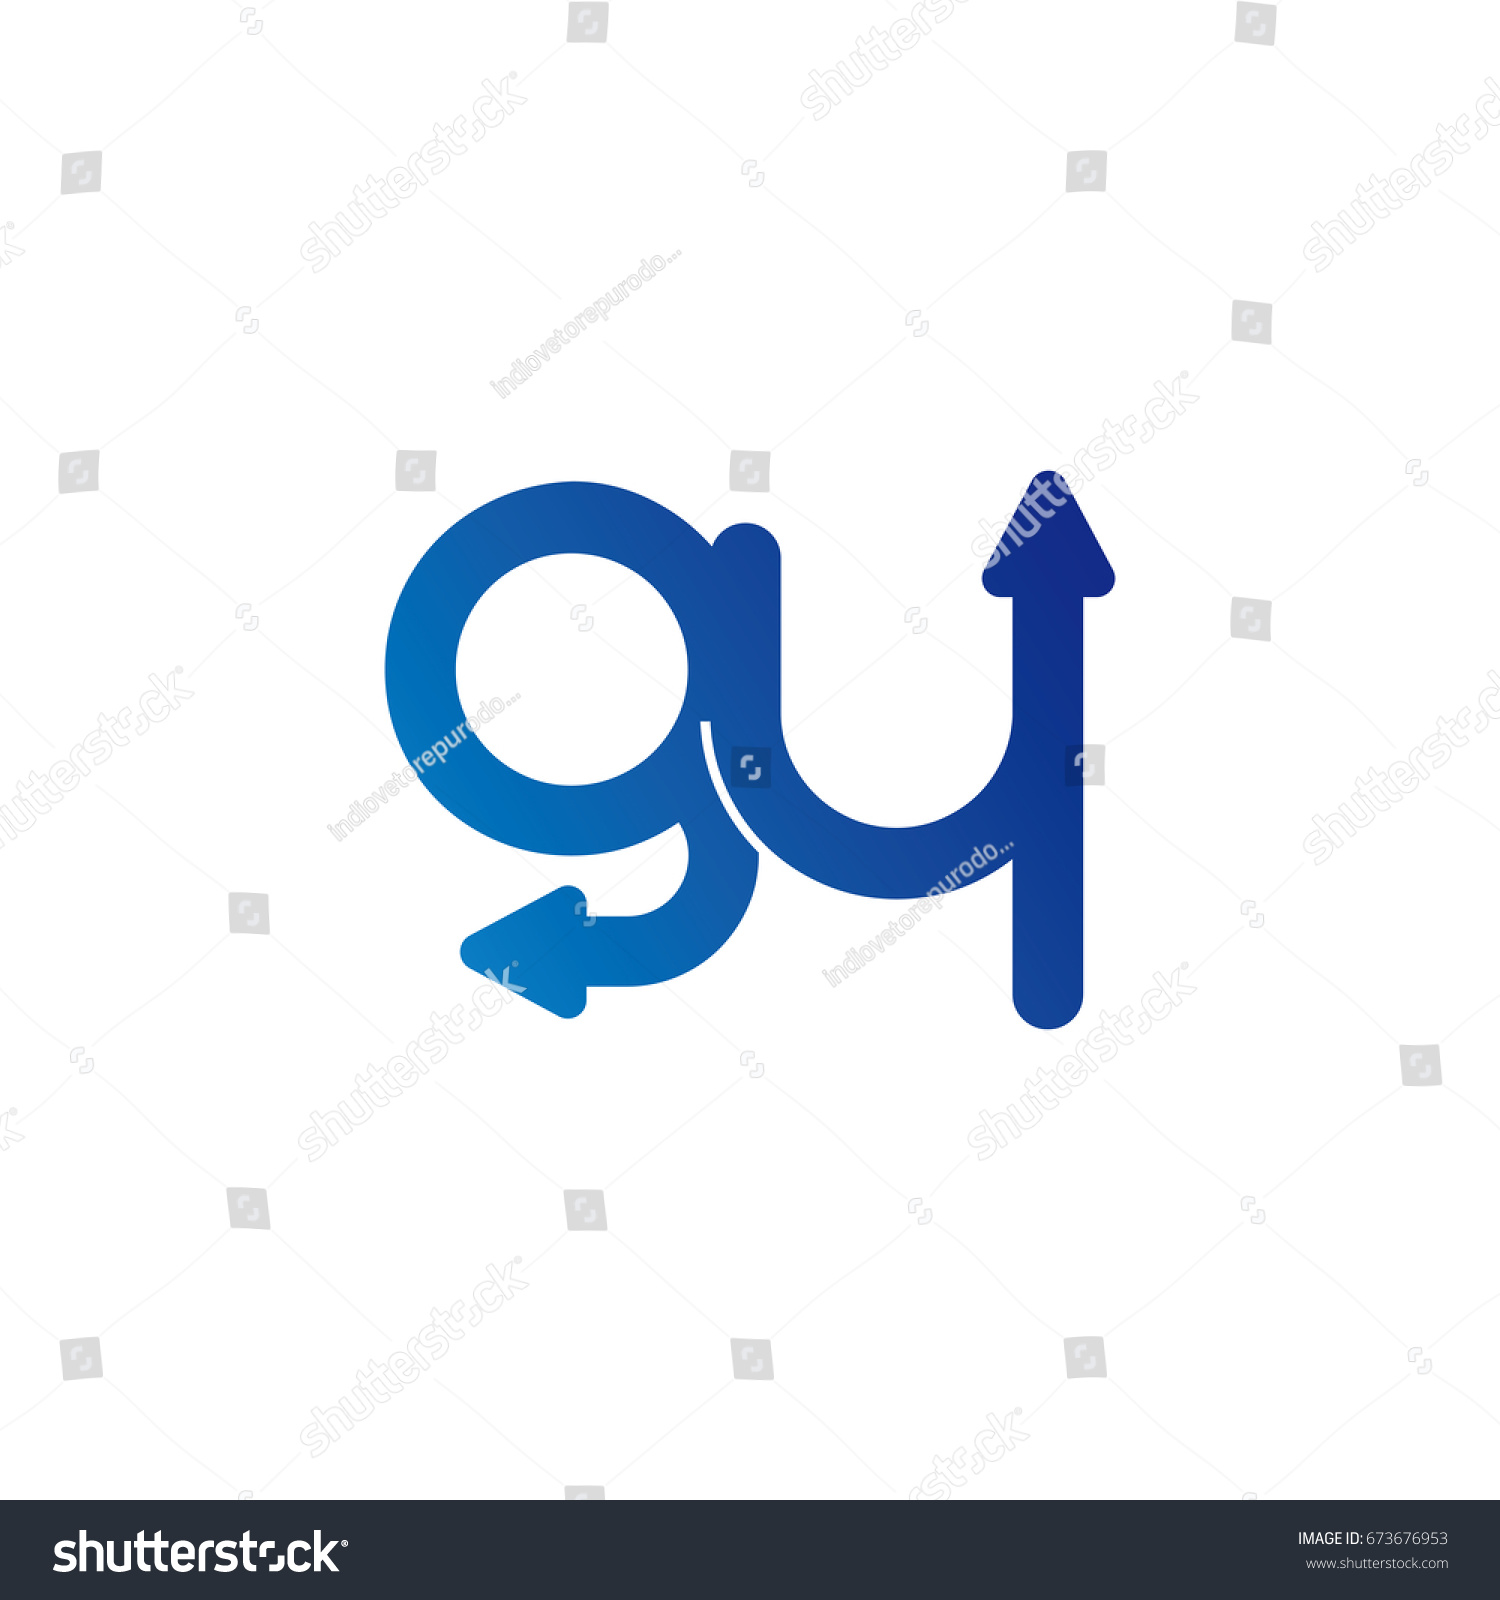 Initial Letter Logo Gy Yg G Y Arrow Rounded Lowercase Blue